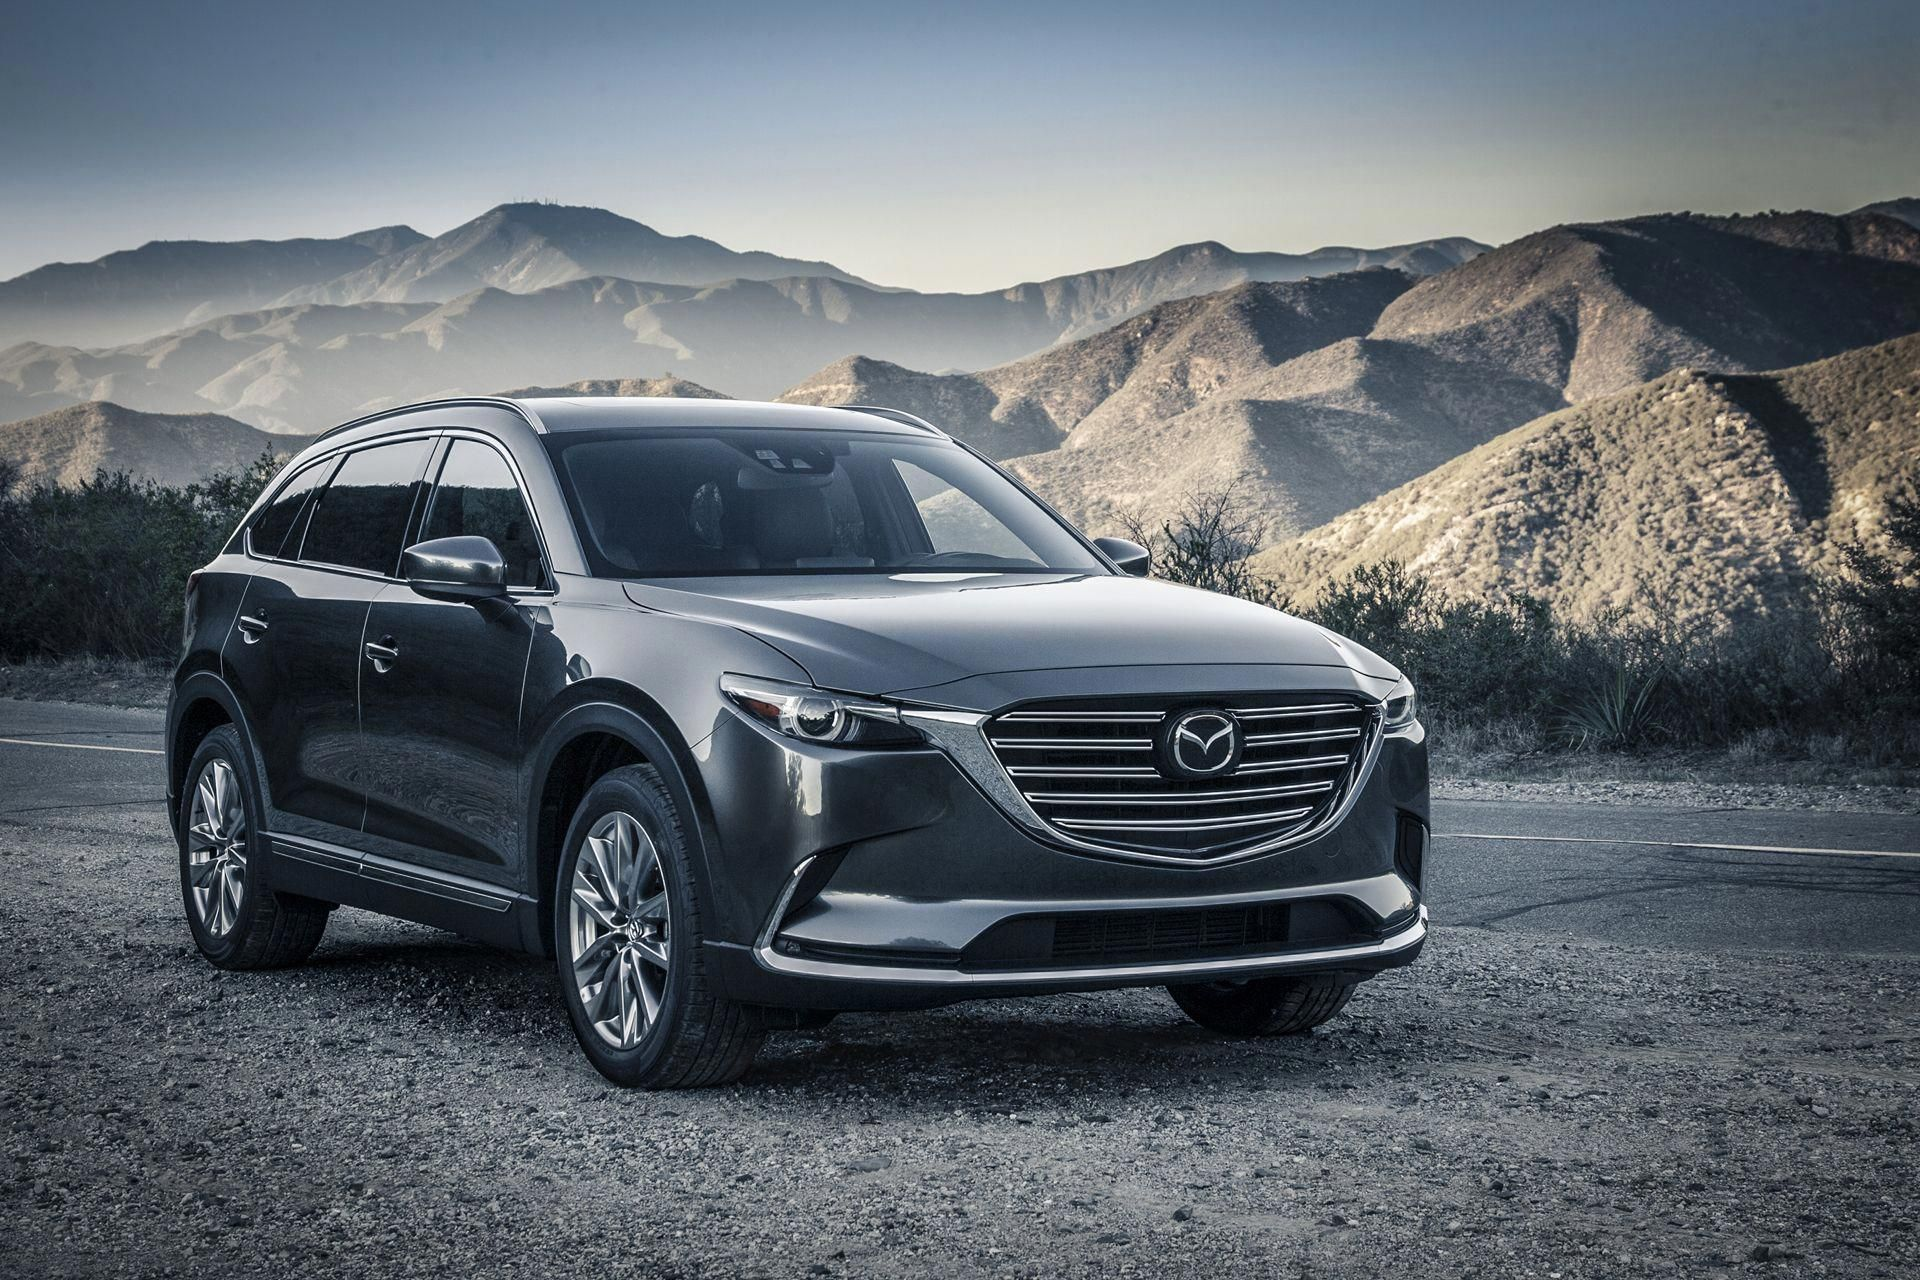 2017 Mazda CX-9 Photo Gallery - Autoblog #BestInteriorDoors | Best